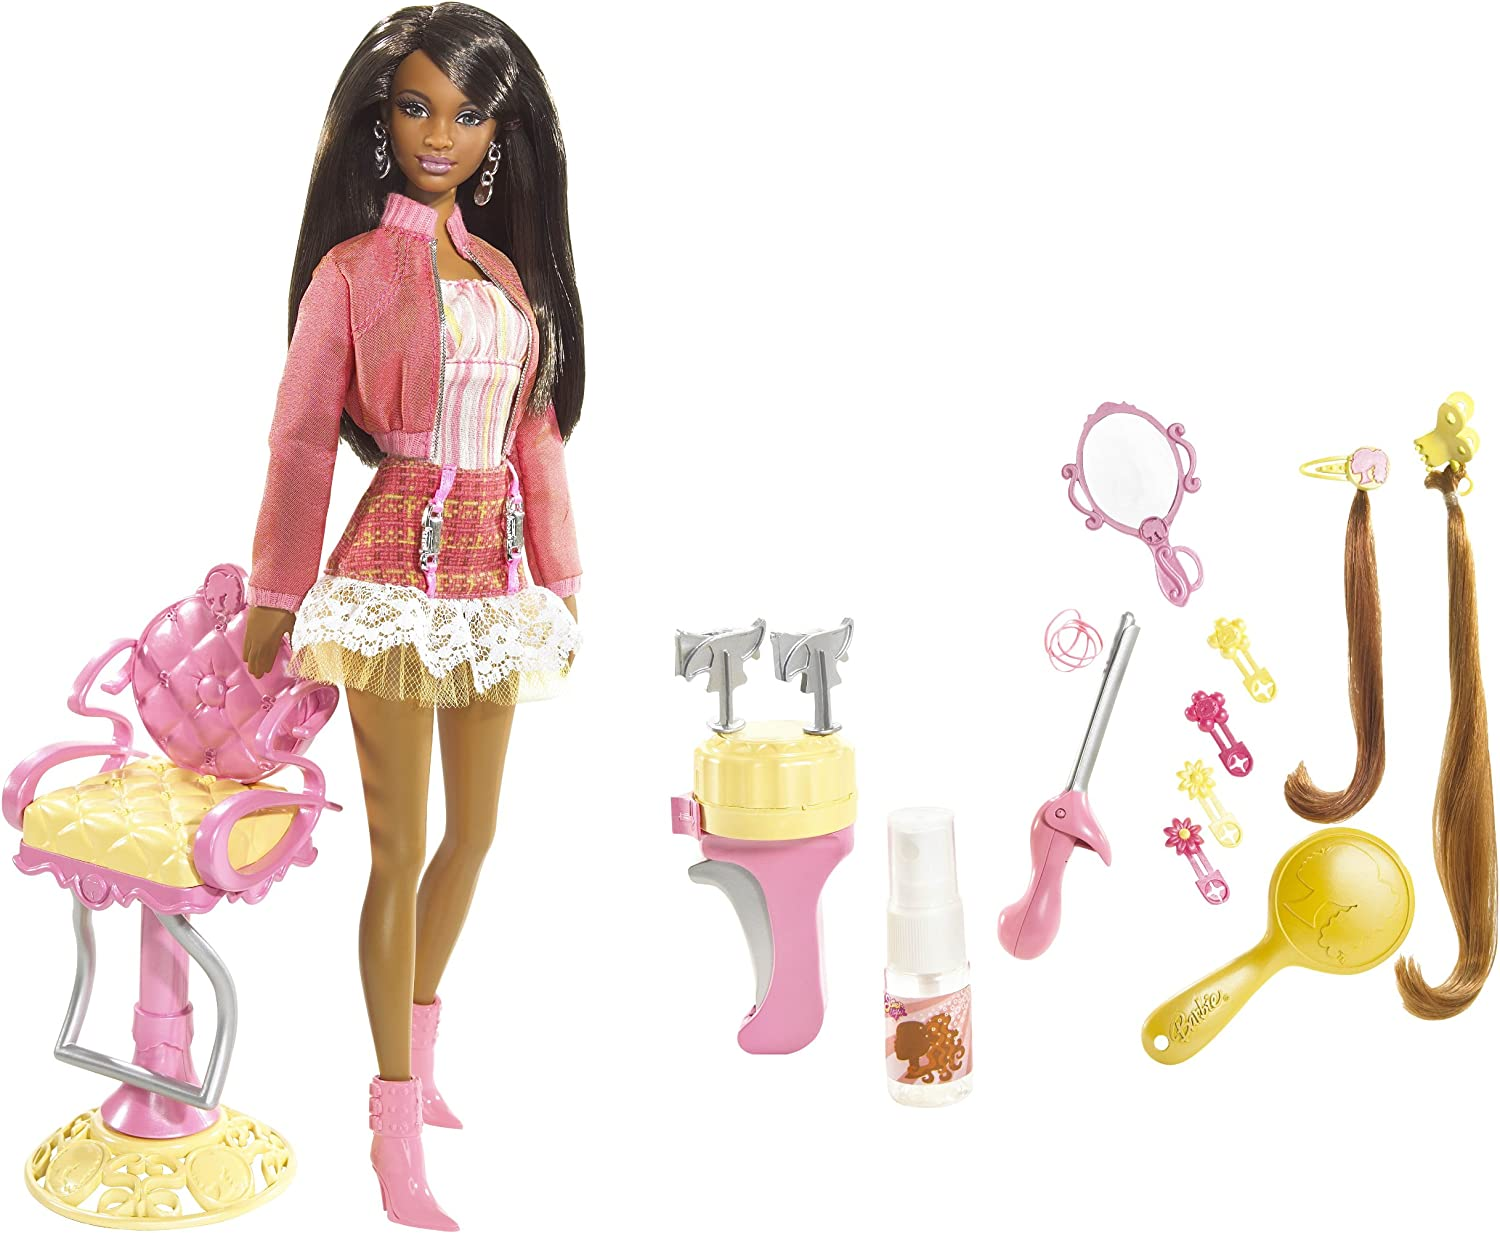 Barbie Max 80% OFF So In Style Hair quality assurance Stylin Doll Grace